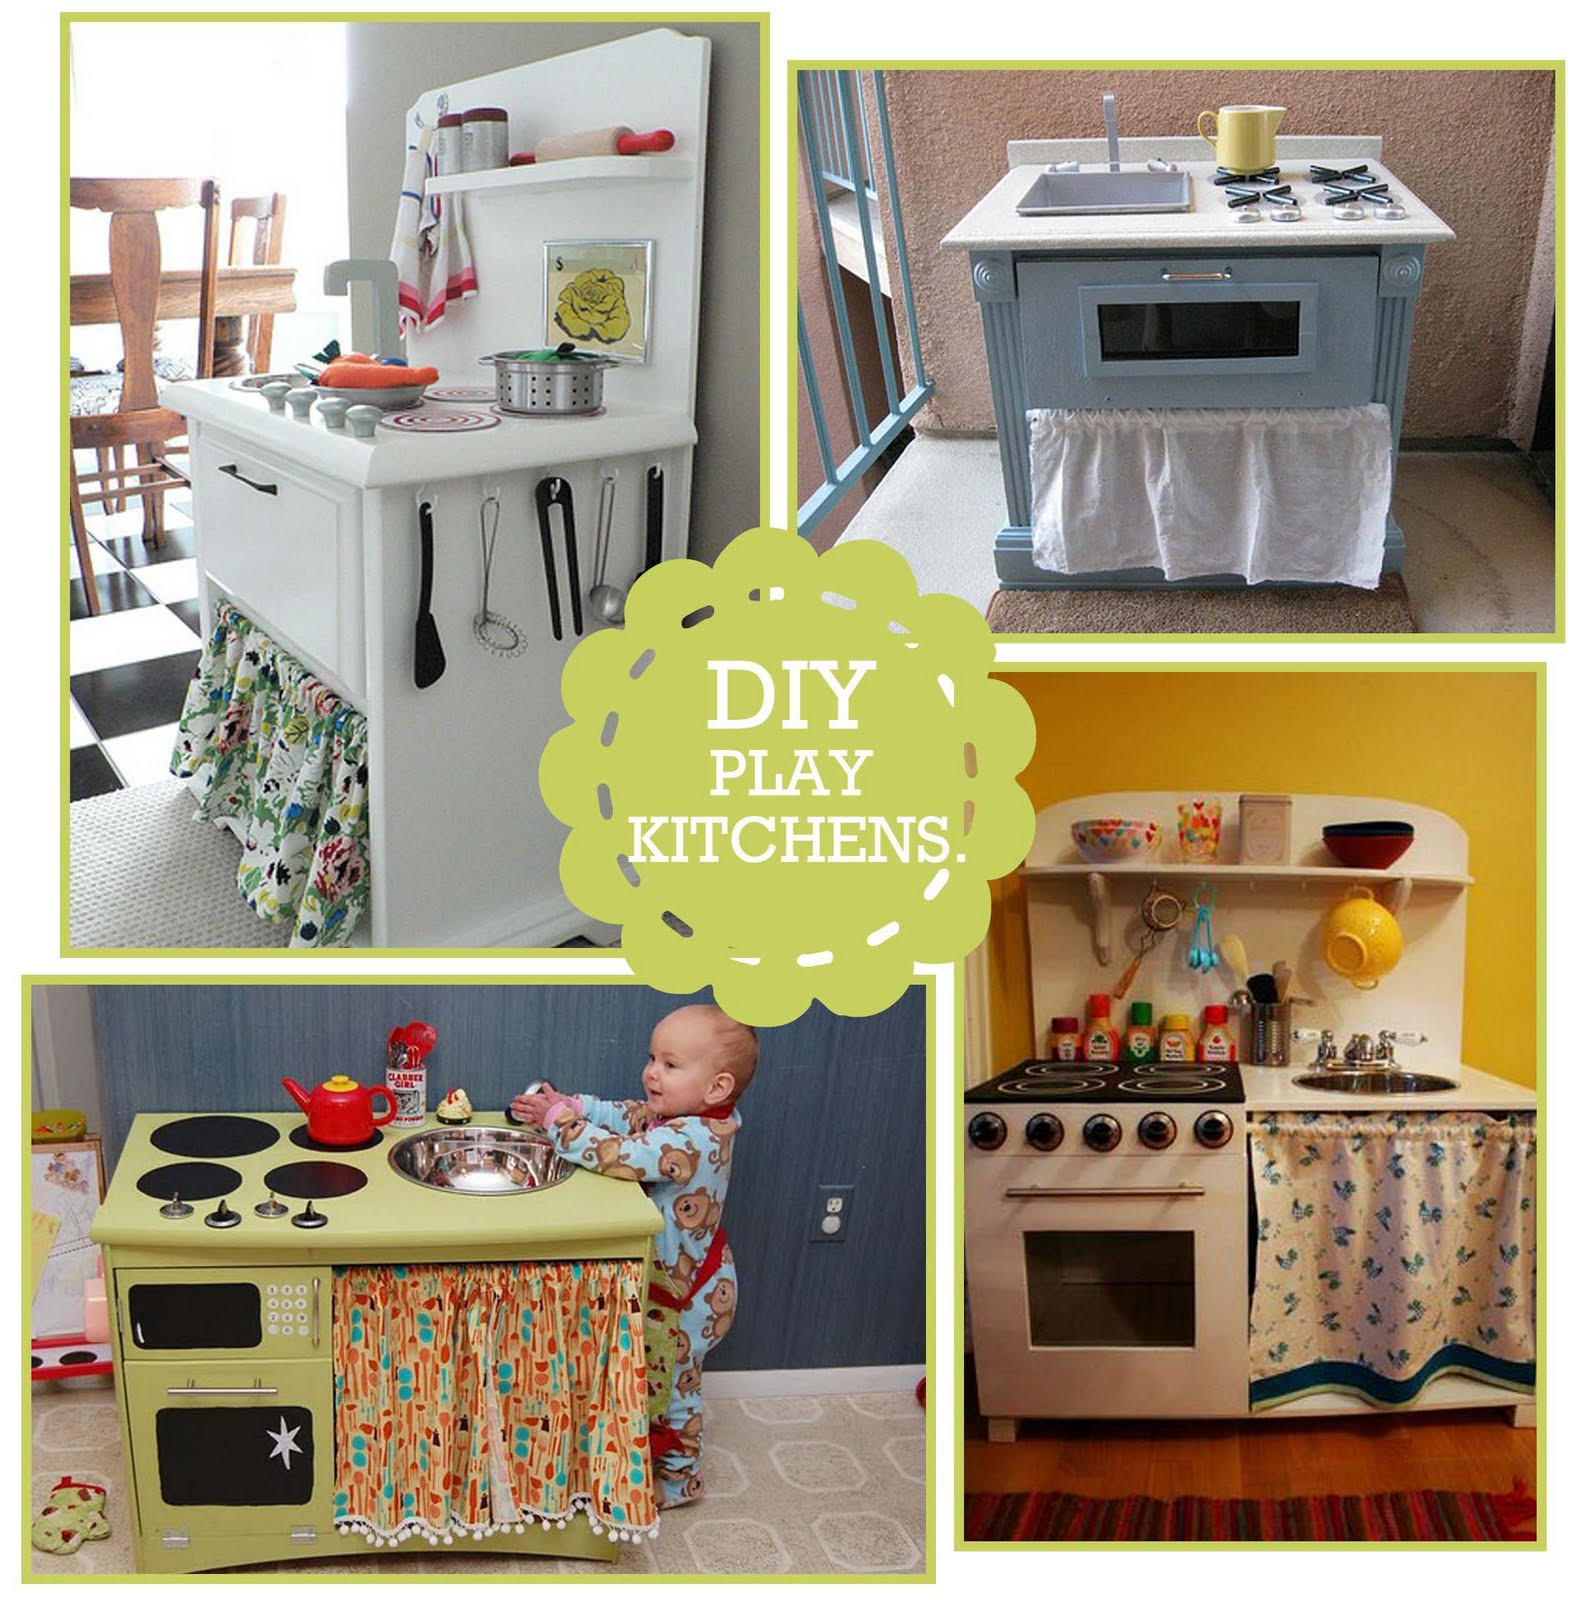 I M Dreaming Of A Diy Play Kitchen: DIY Kitchen Play Set: Photo Inspiration & Links + Giveaway